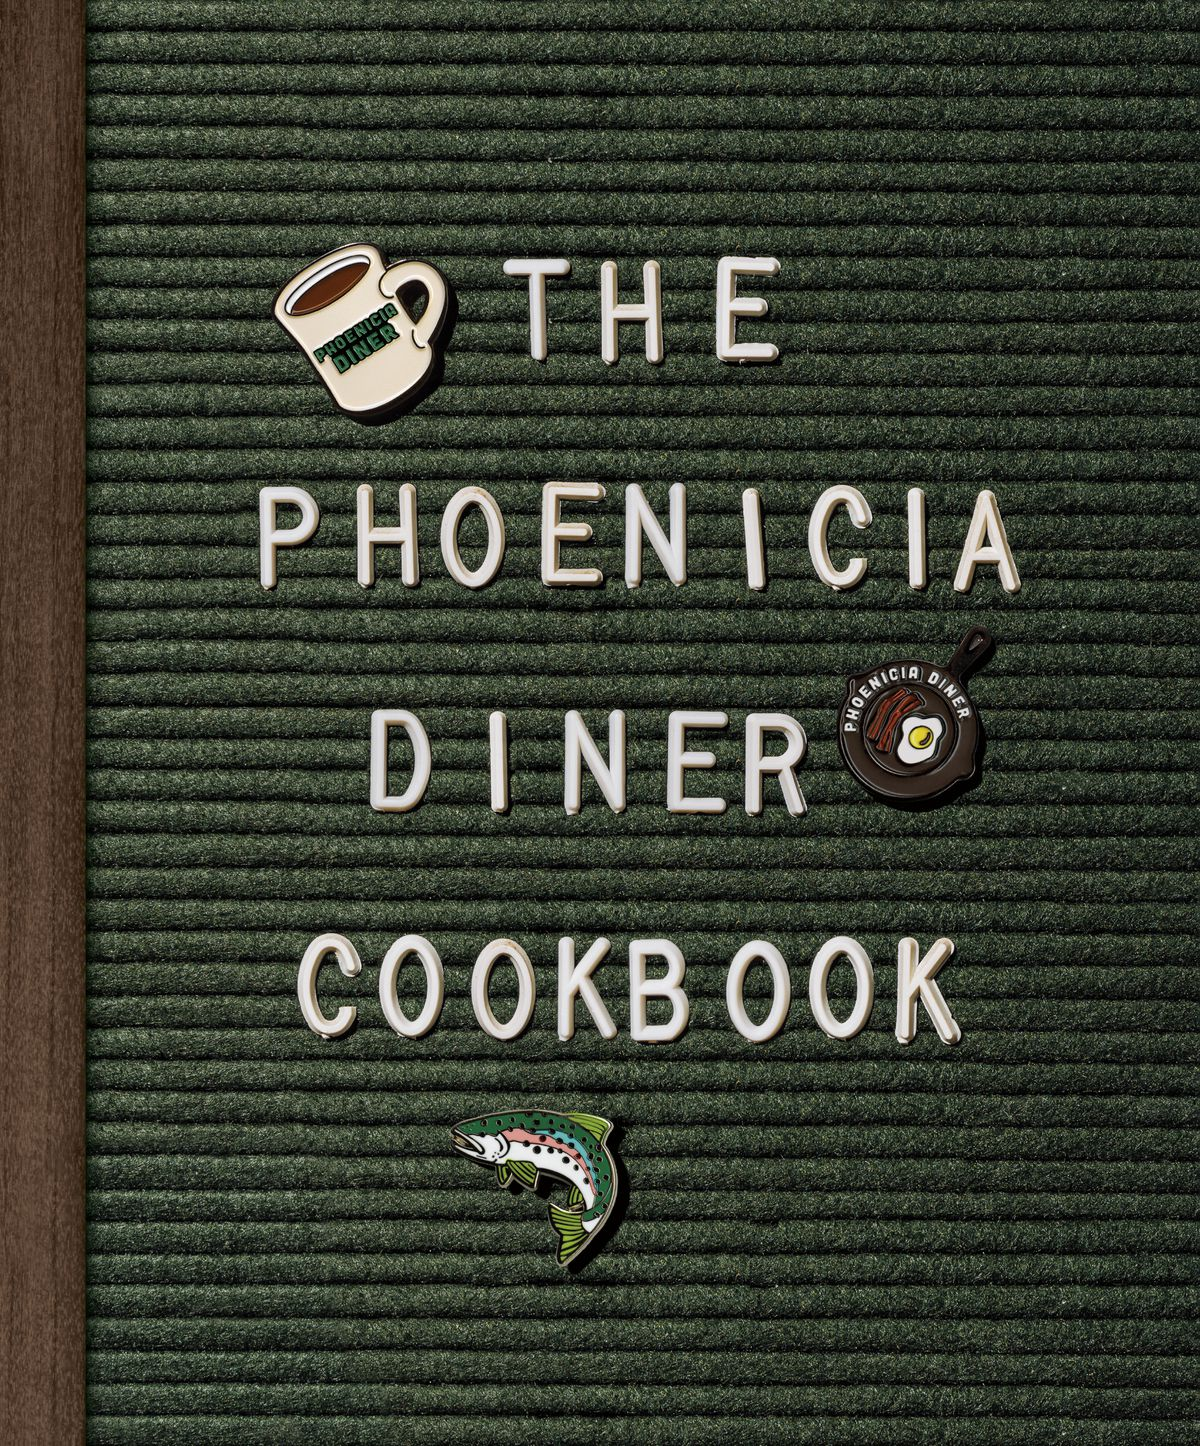 The cover of the Phoenicia Diner Cookbook